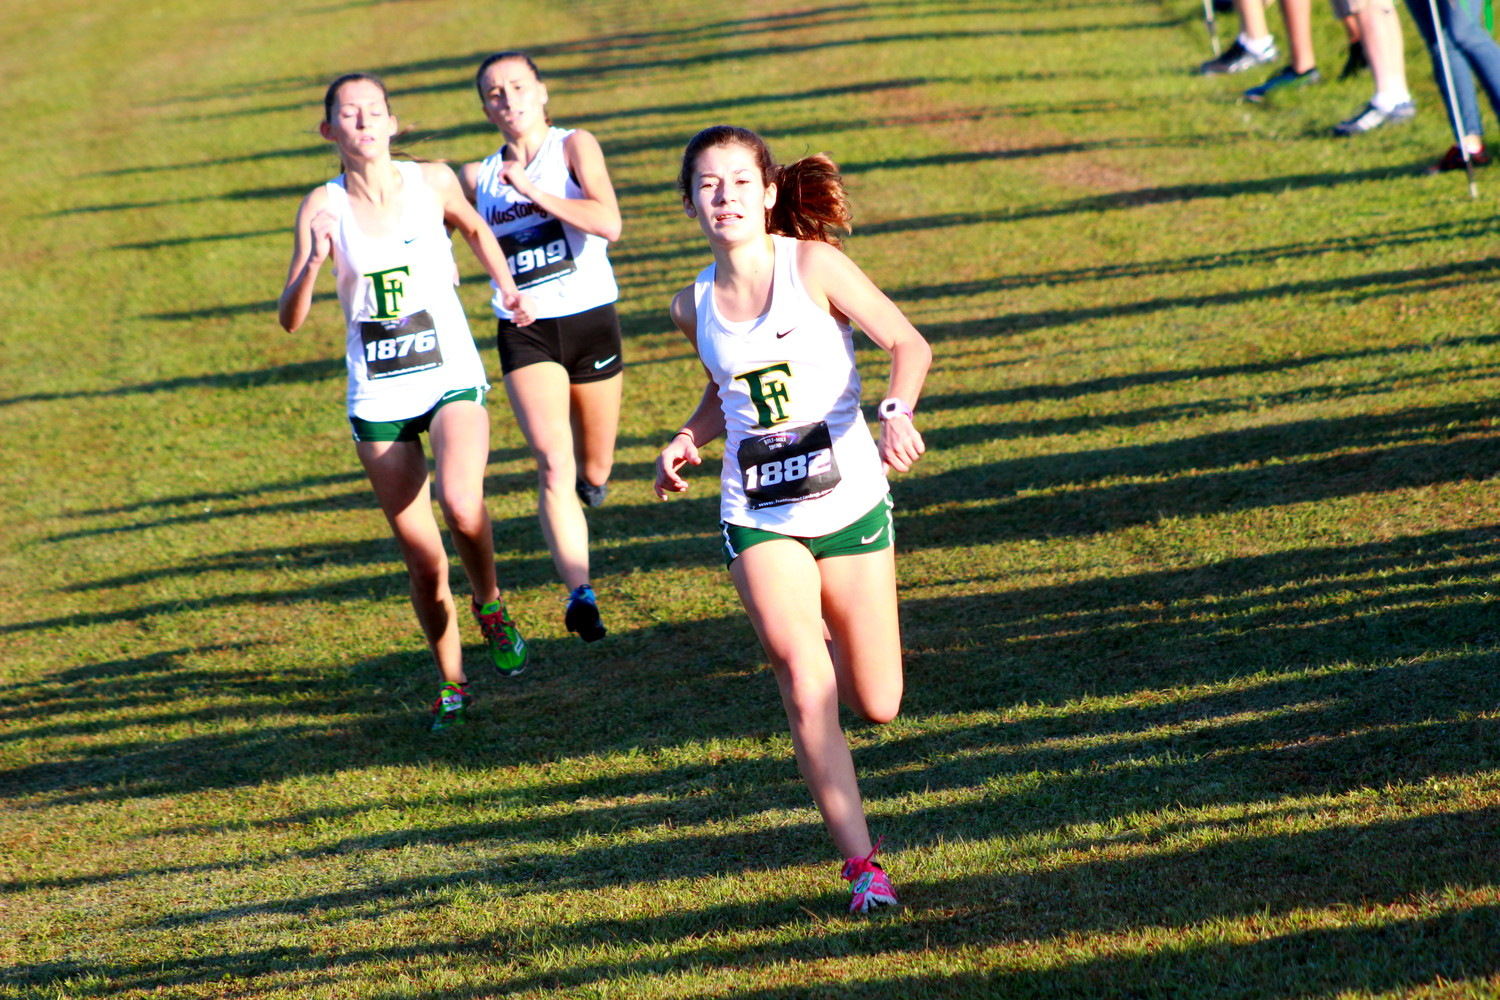 Fleming Island's girls team took second off a strong fourth and fifth finish here from Emma Millson and Julie Fliess.